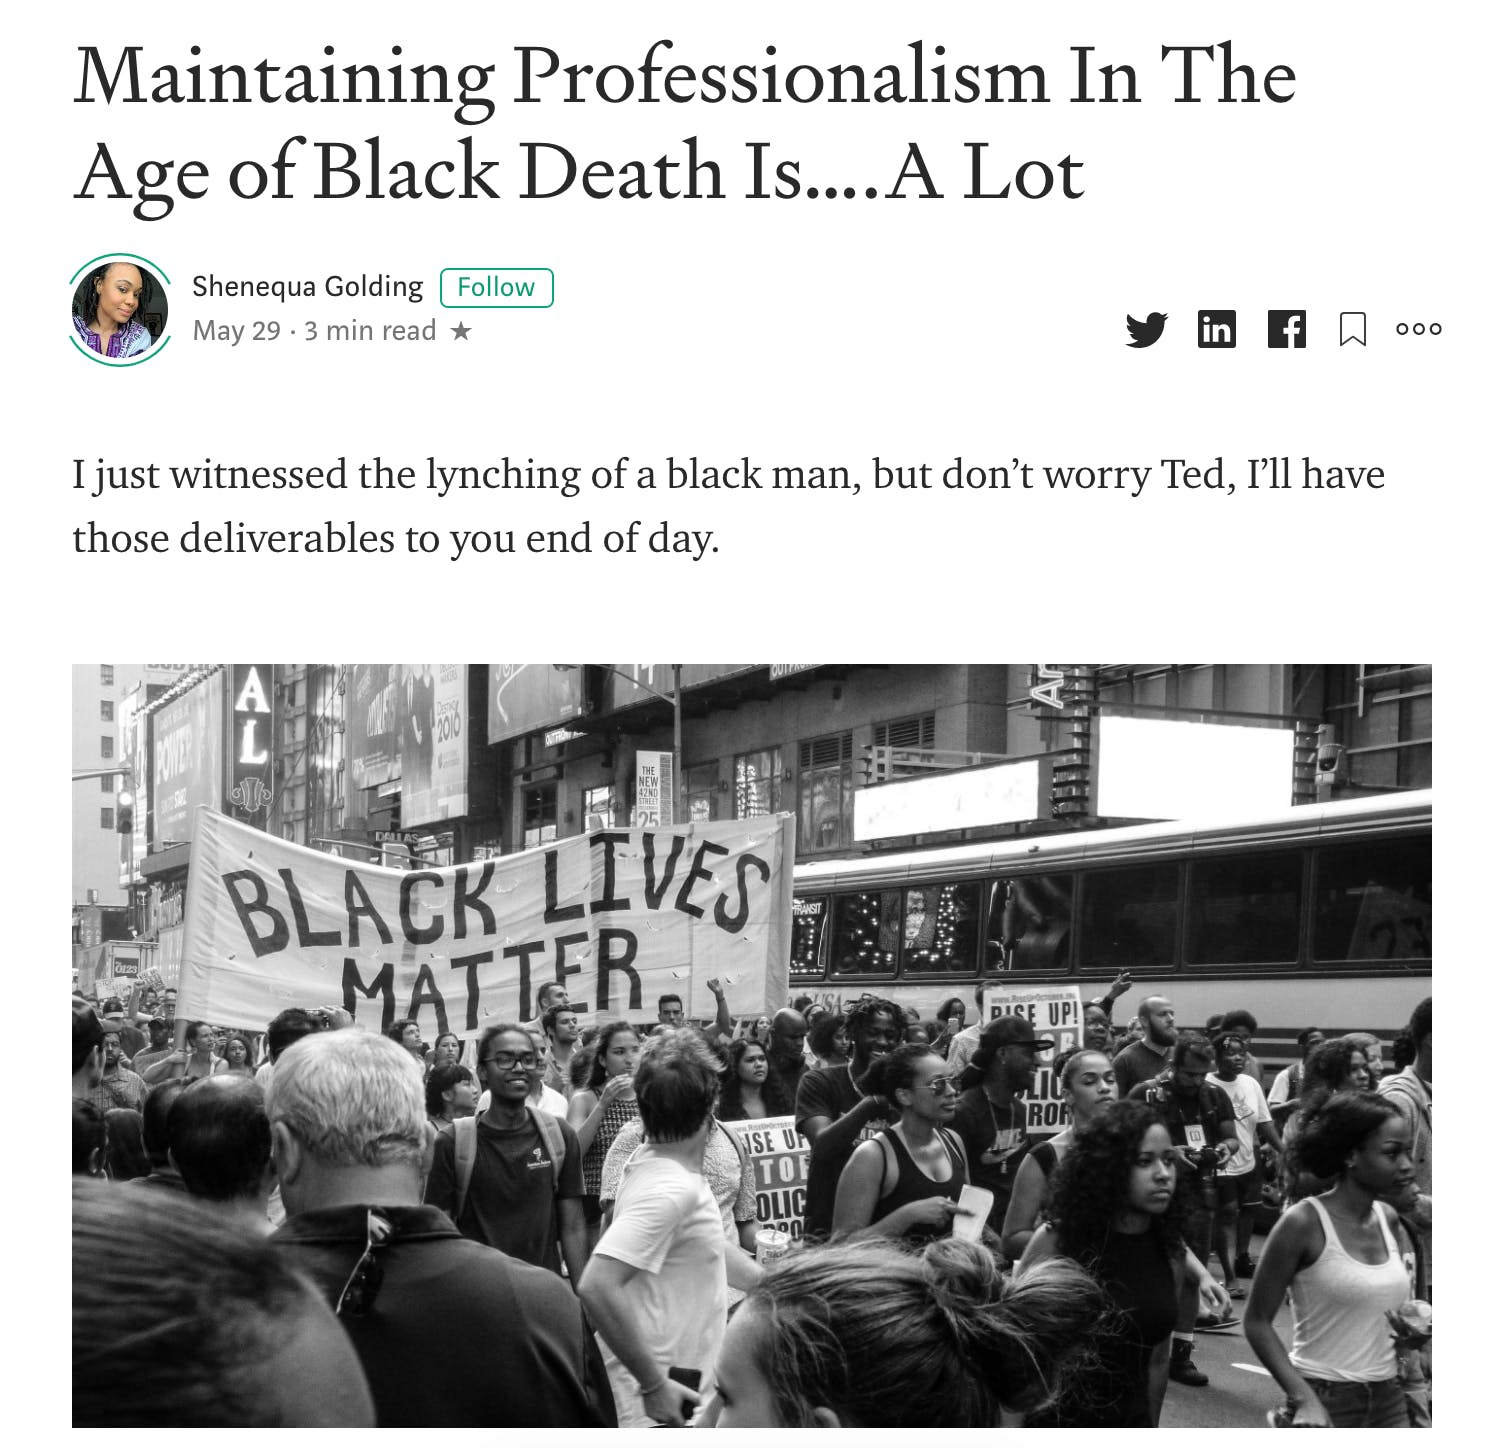 maintaining professionalism in the age of black death